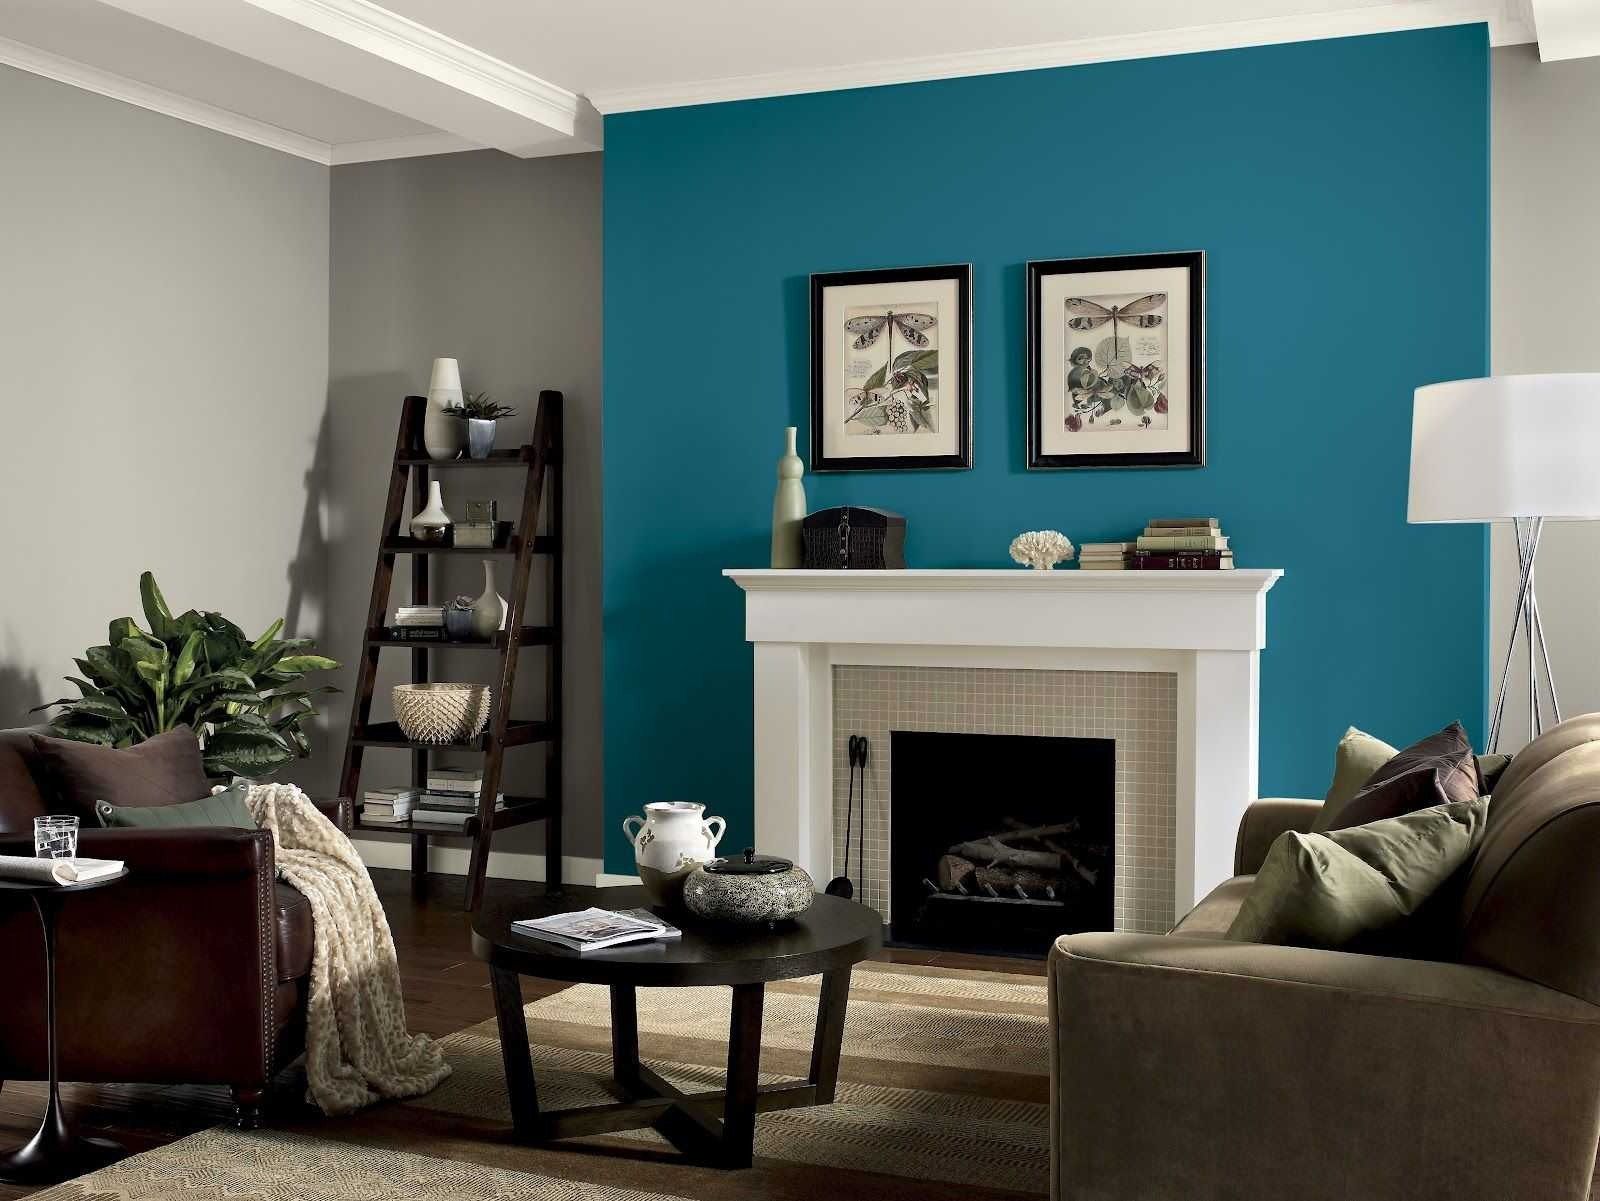 Best ideas about Accent Walls Color Combinations . Save or Pin 15 Best Collection of Wall Accents Color binations Now.